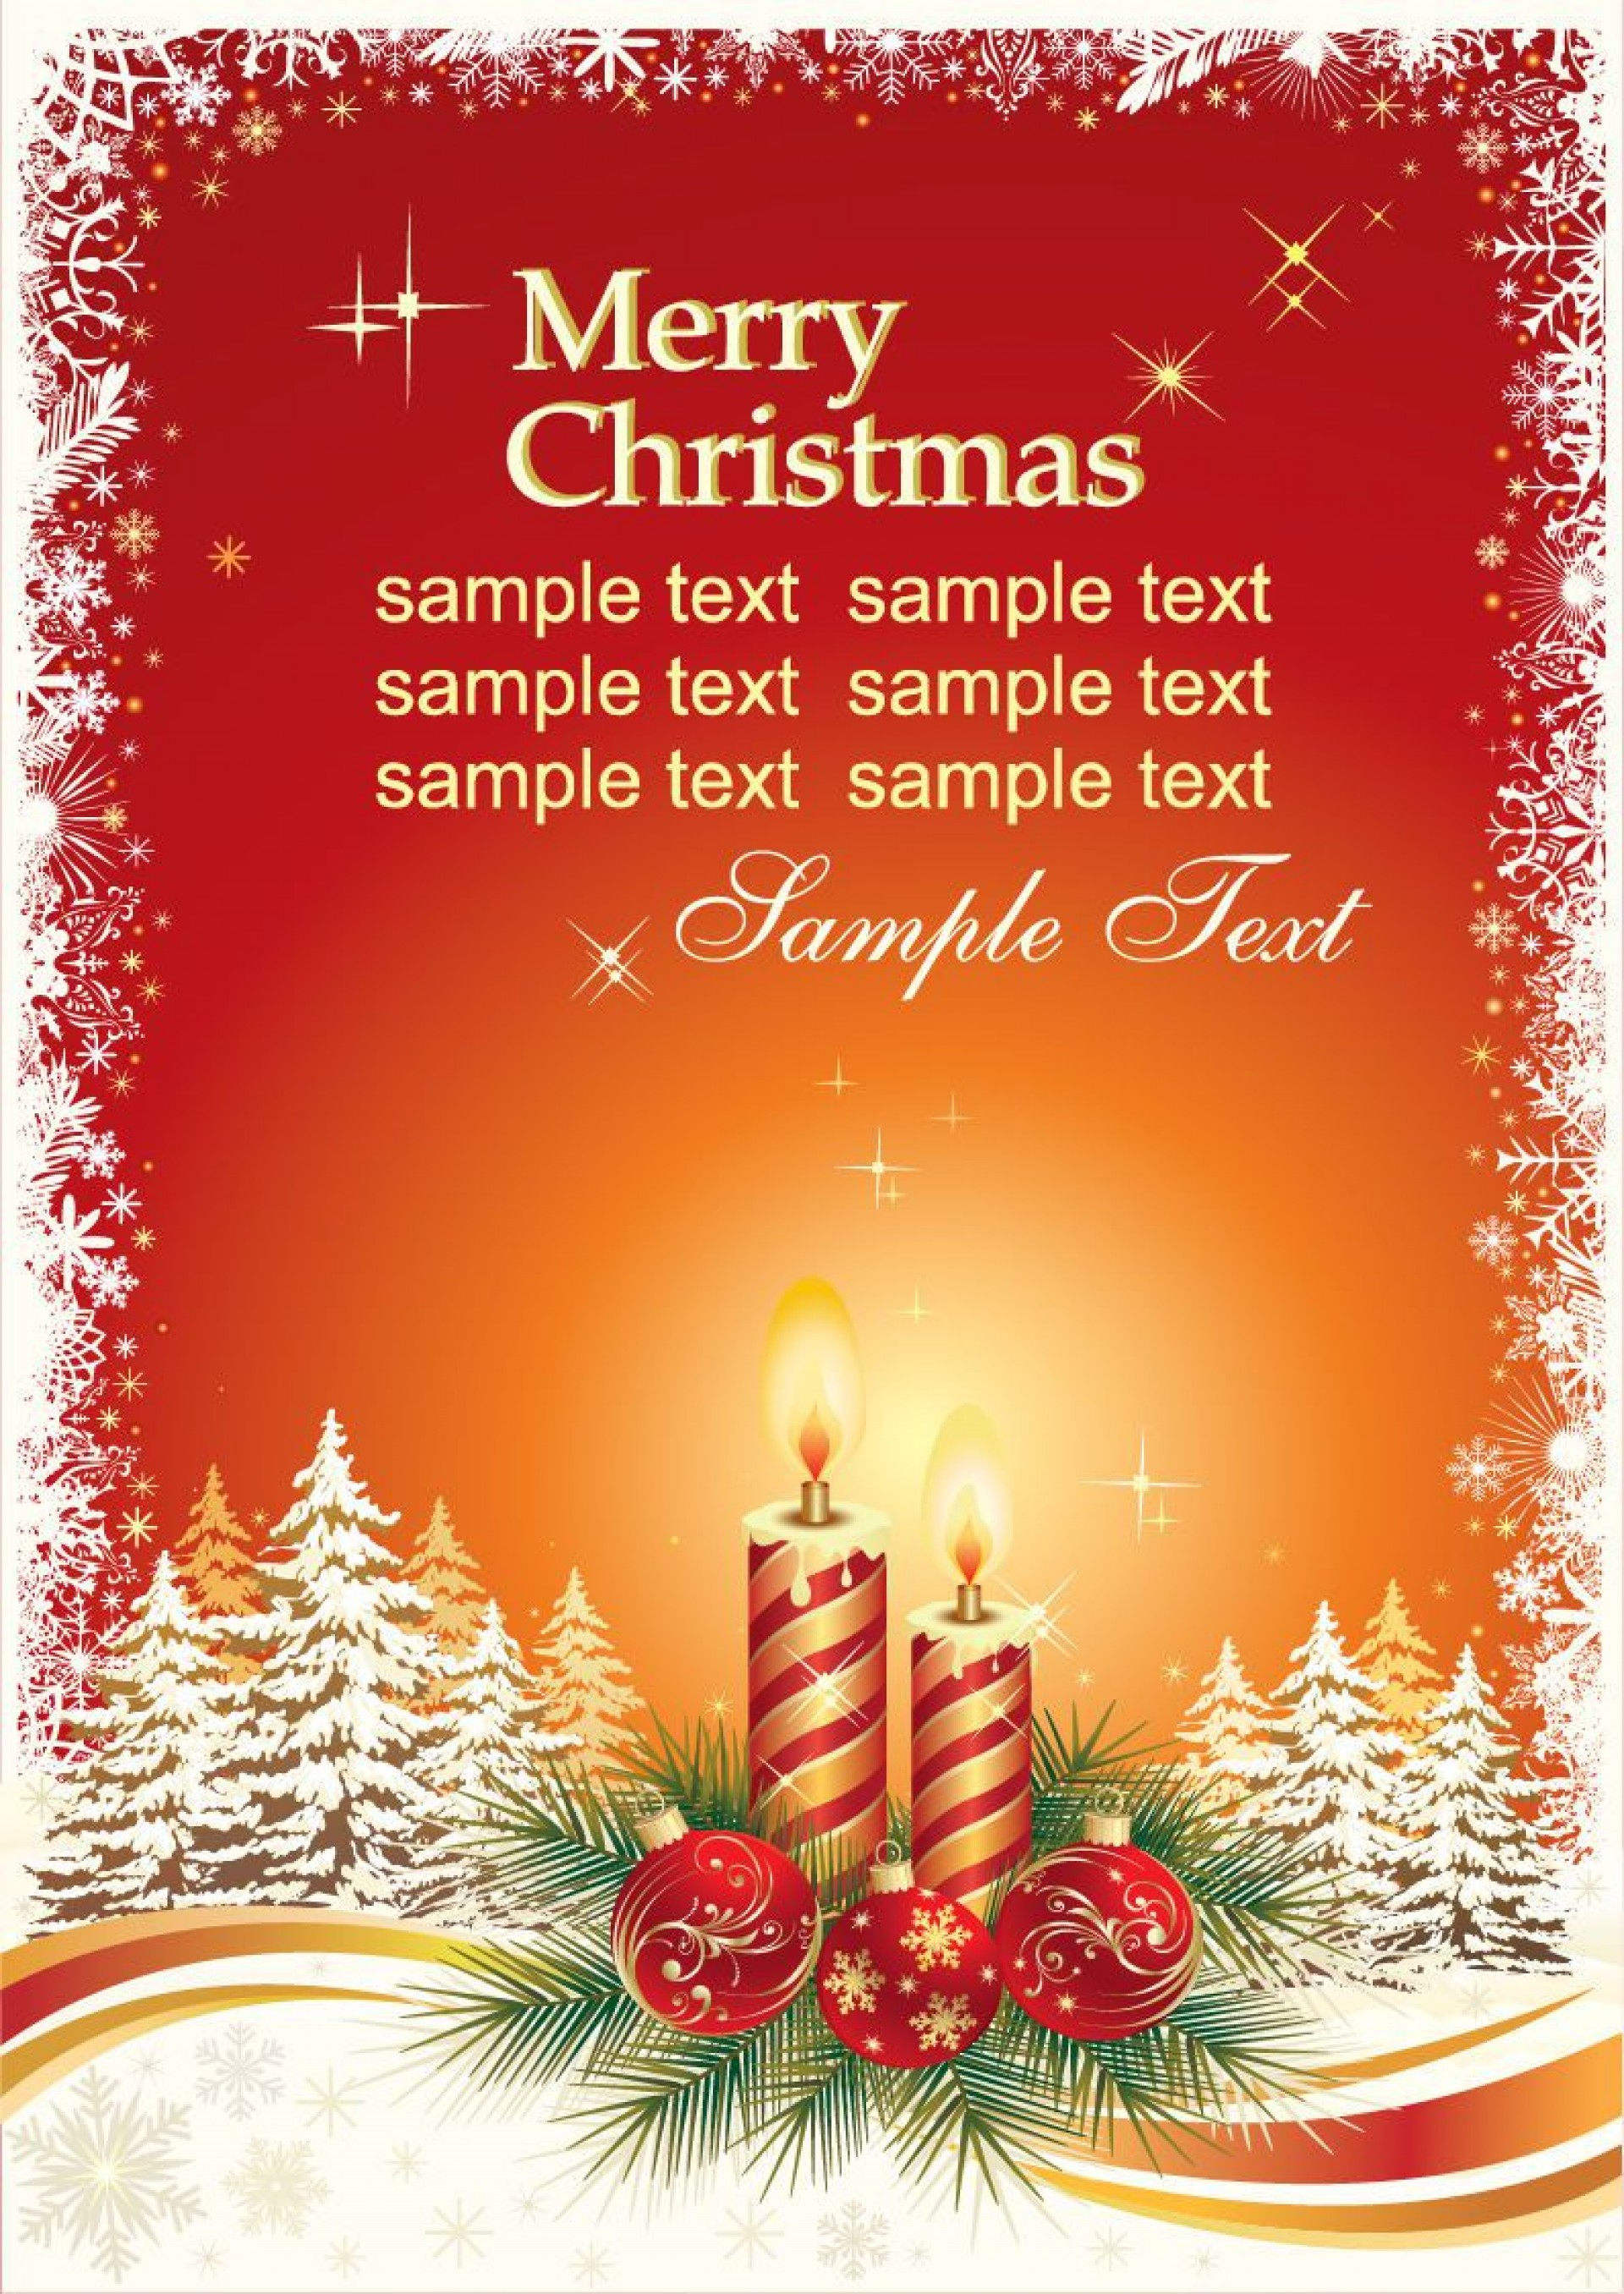 006 Staggering Christma Card Template Free Download Highest Clarity  Photo Xma Place1920